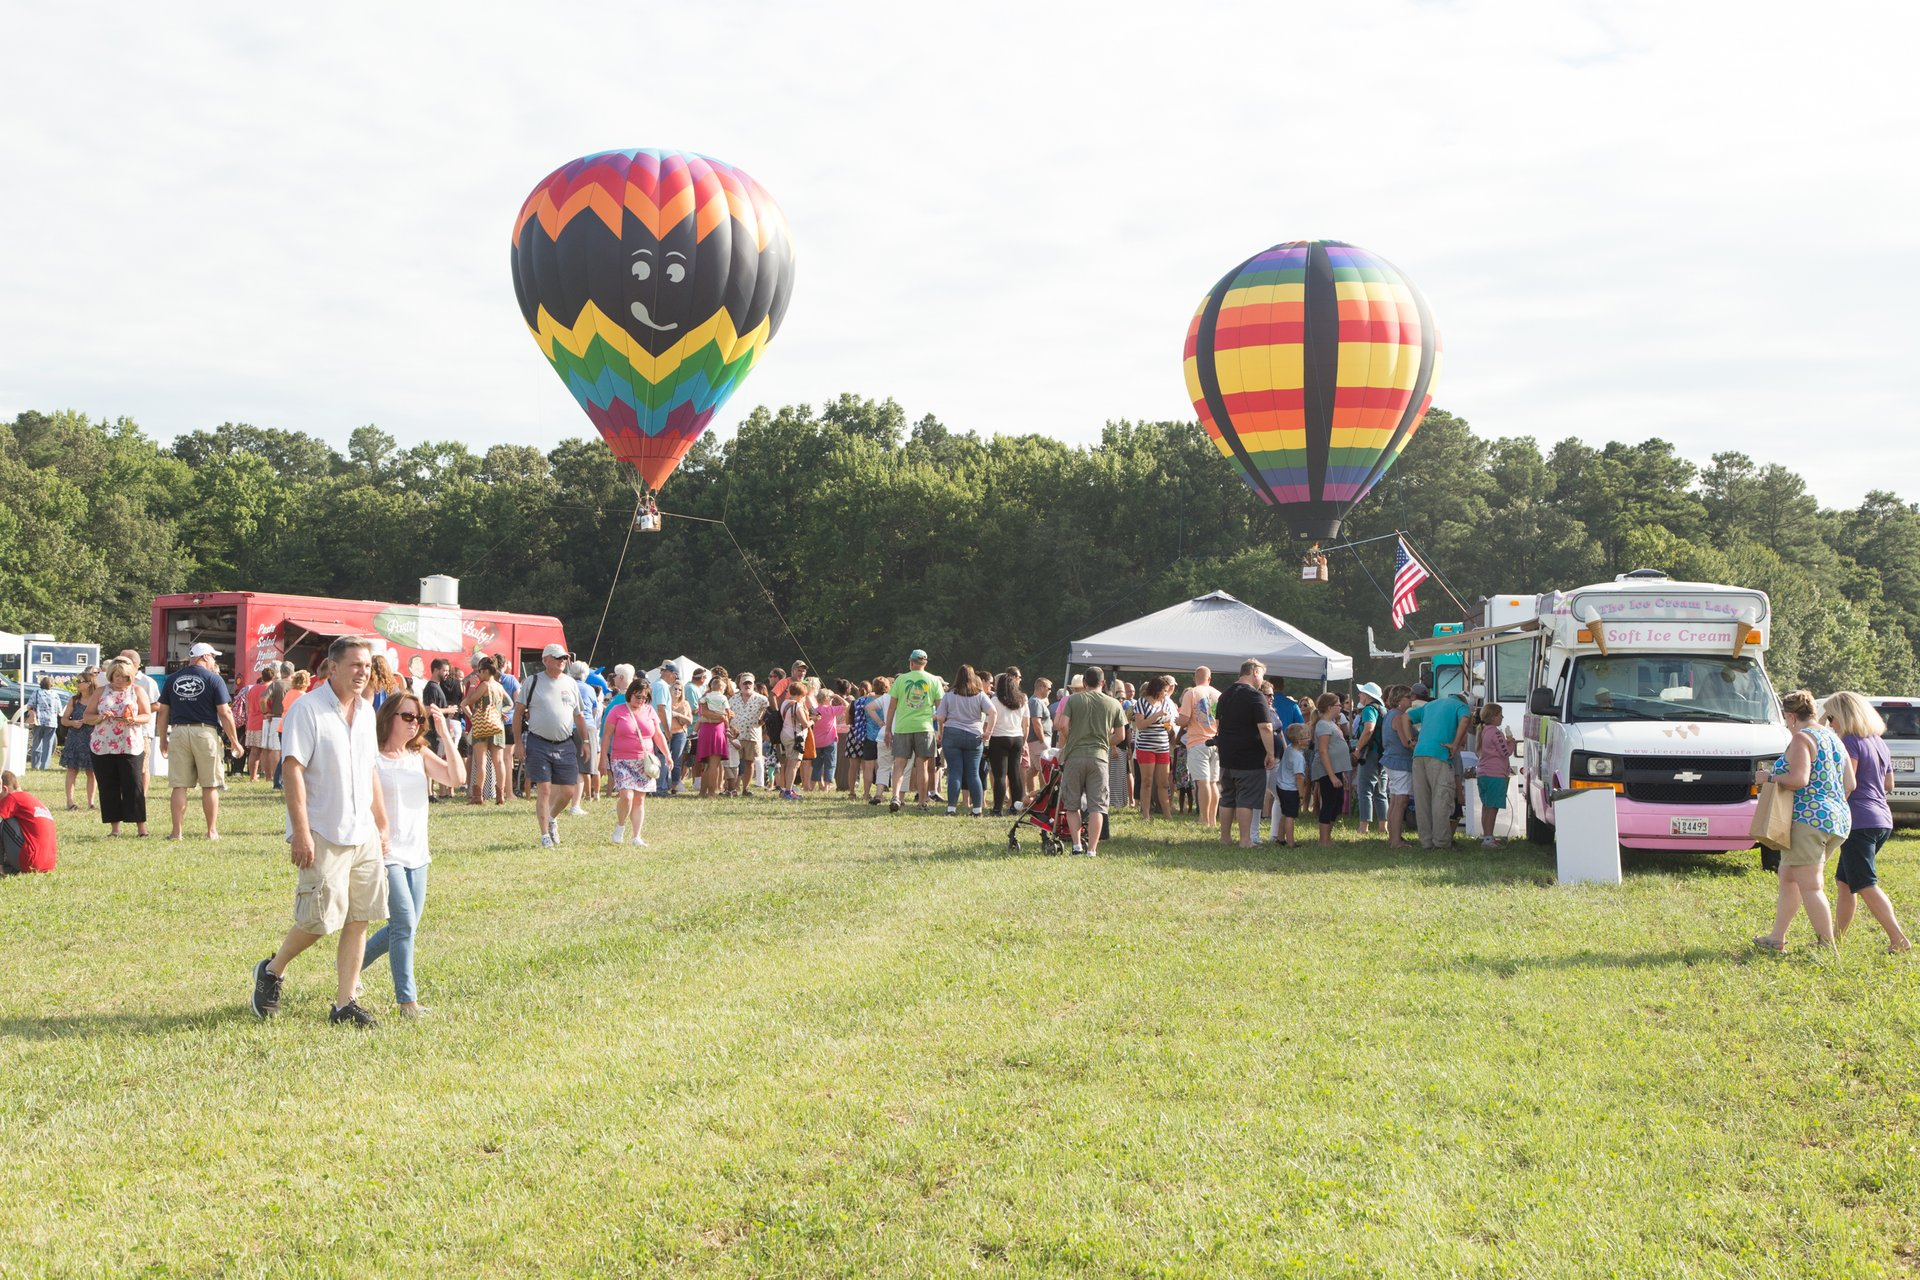 Chesapeake Bay Balloon Festival in Maryland - Best Season 2019